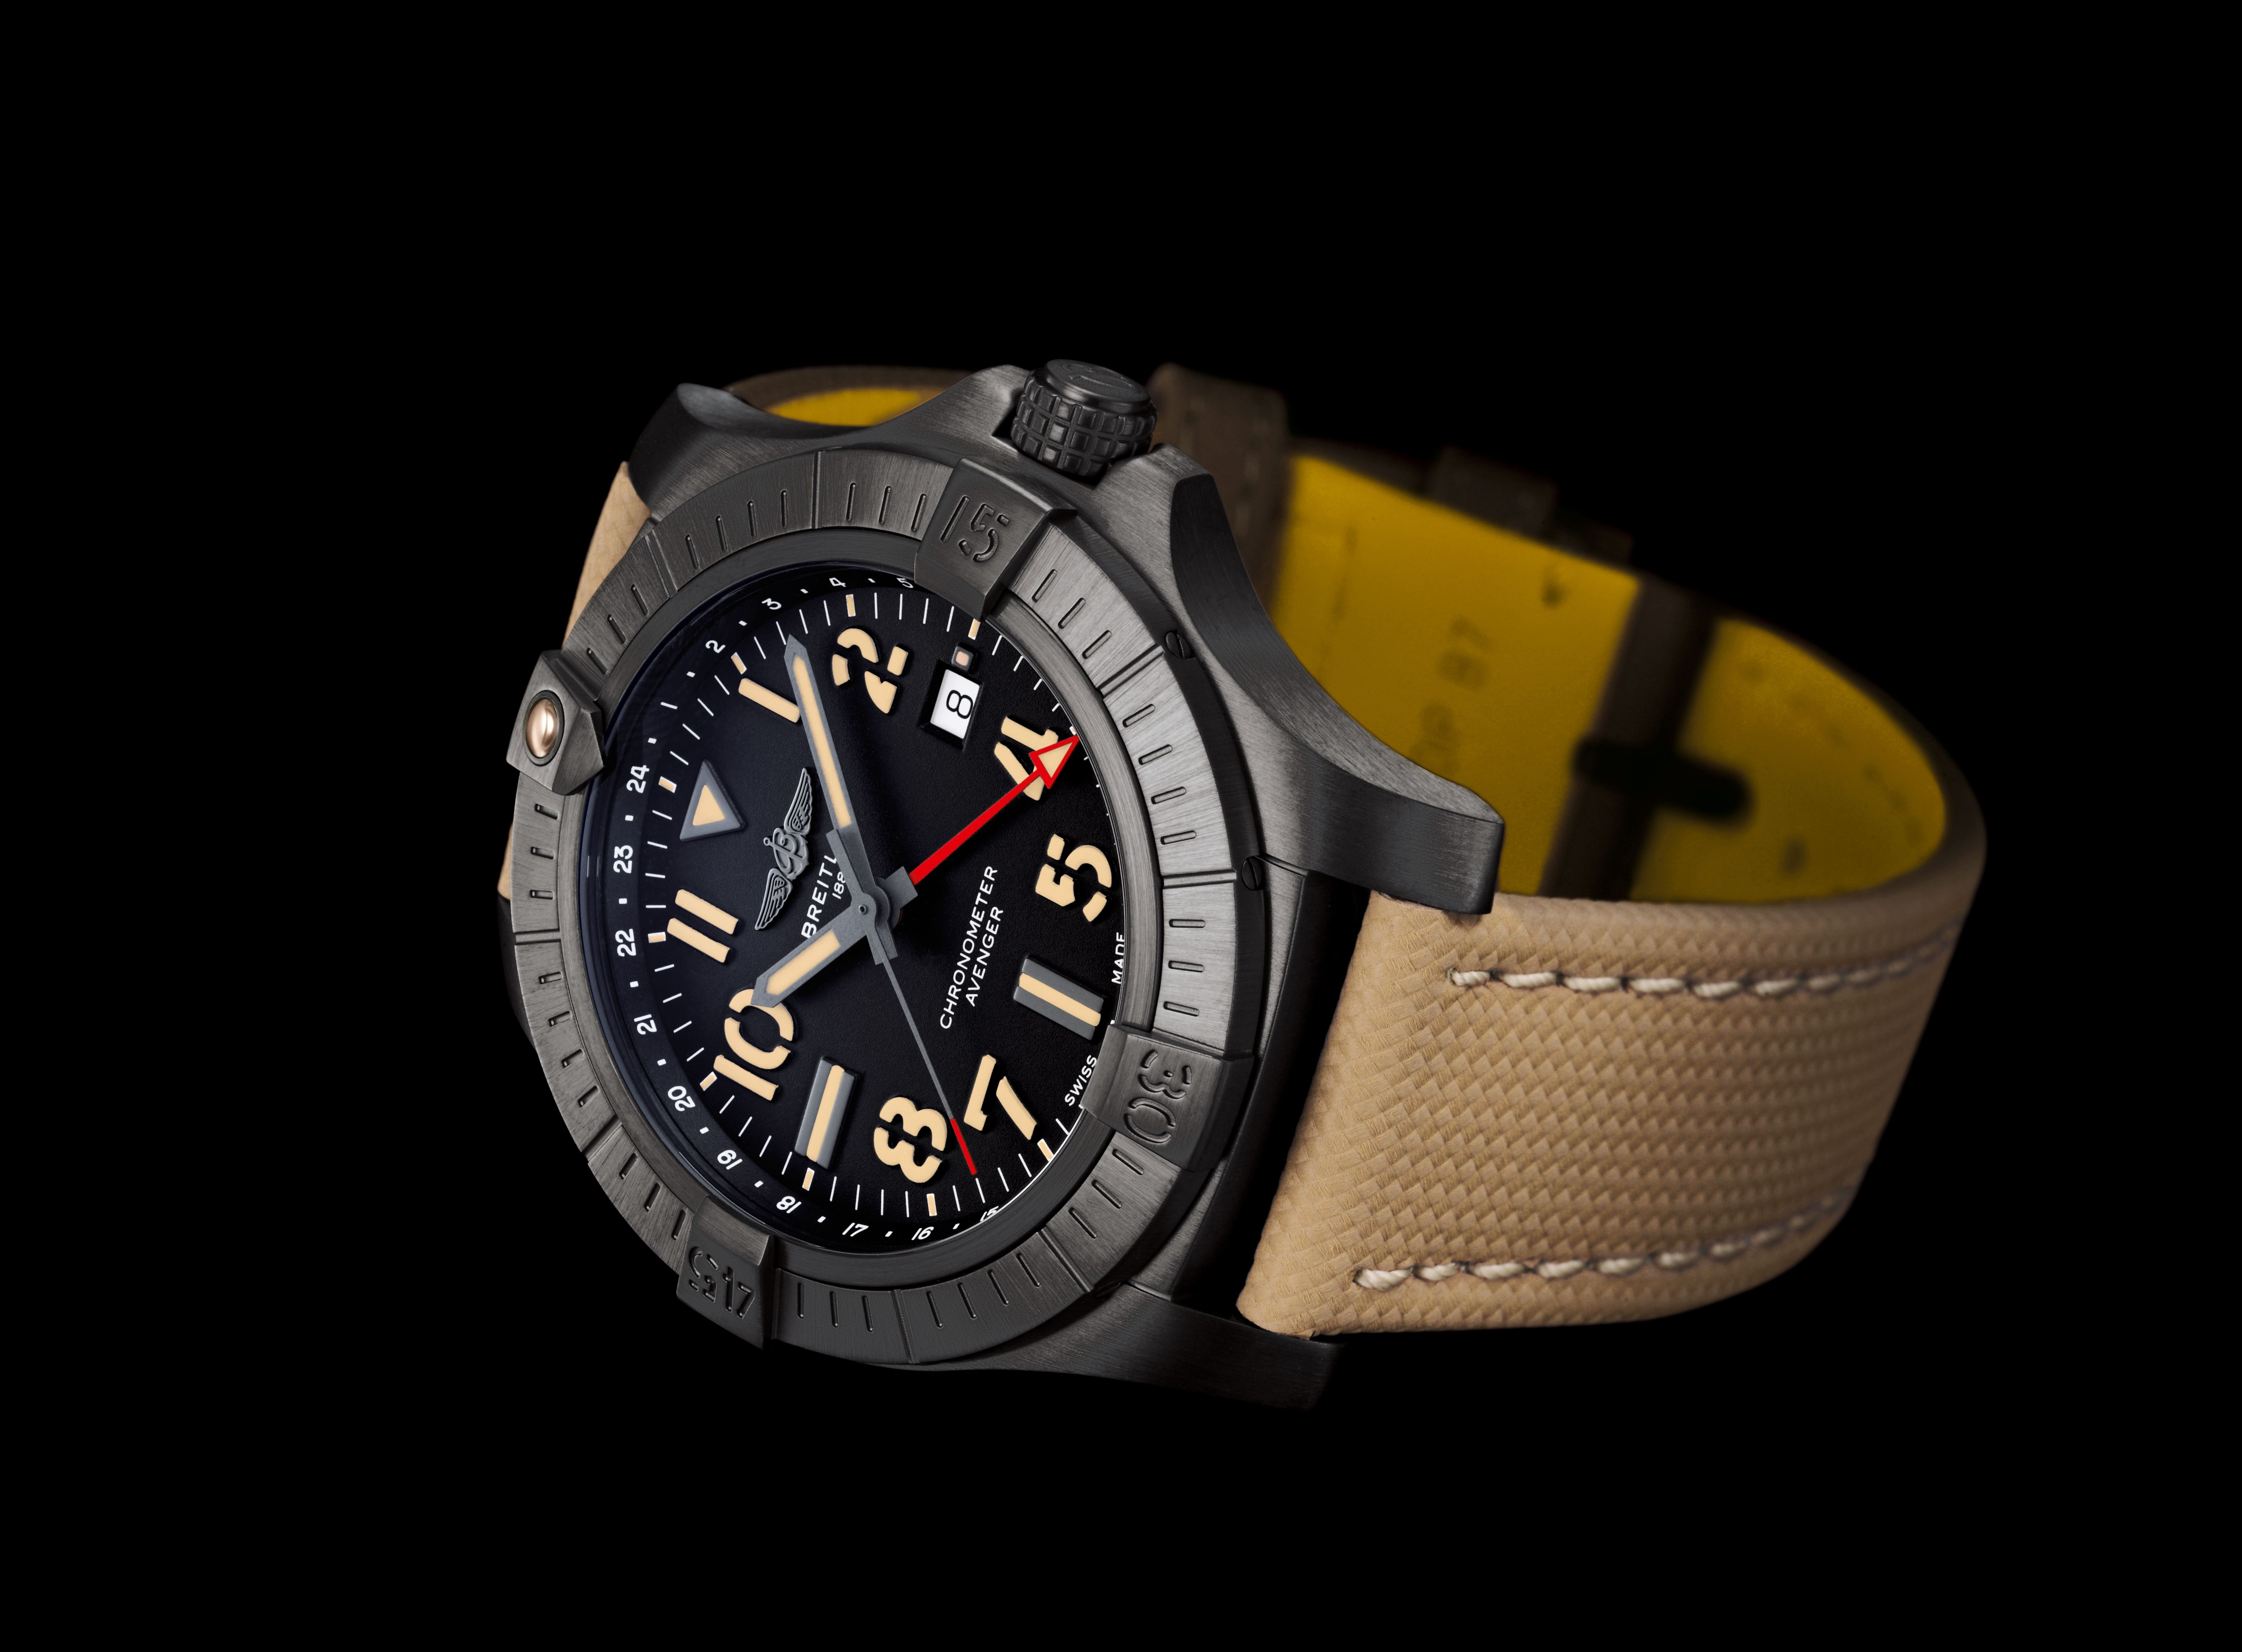 Avenger-Automatic-GMT45-ambiance_Final.tif